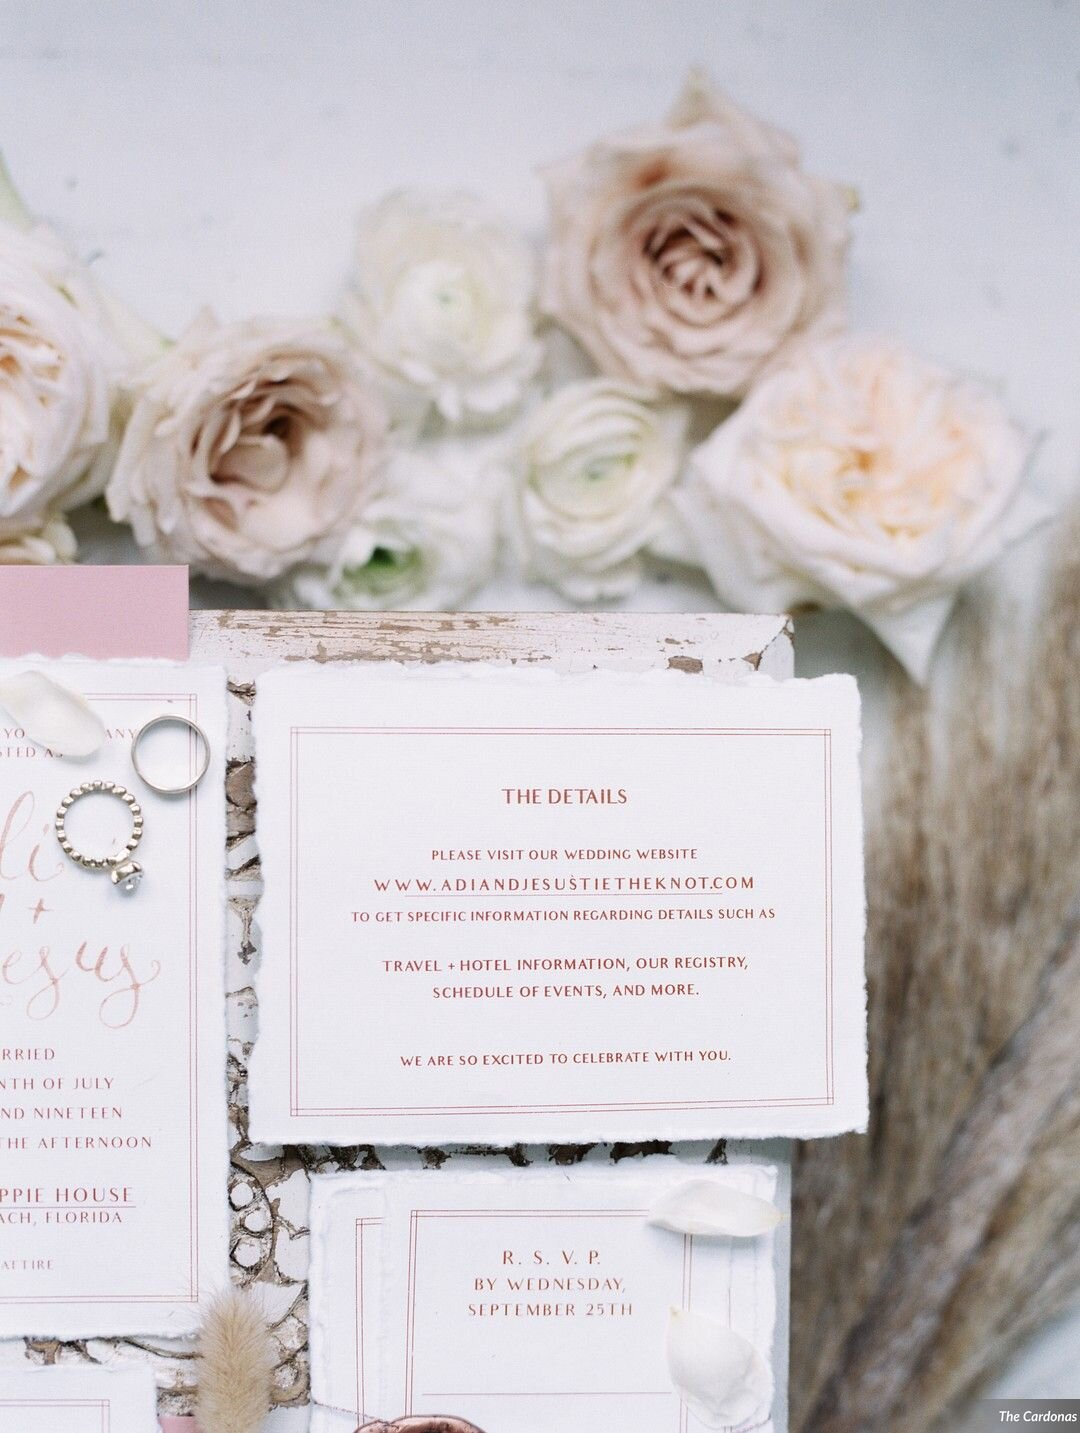 Invitation Suite printed on white handmade paper with a deckled edge or torn paper detail. Rose Gold text and spot calligraphy names and Pink/Dusty Rose Envelopes. Rose gold twine and adorned with a Rosé colored rose wax seal. Invitation suite with ring detail on a bed of rocks and foraged floral detail.